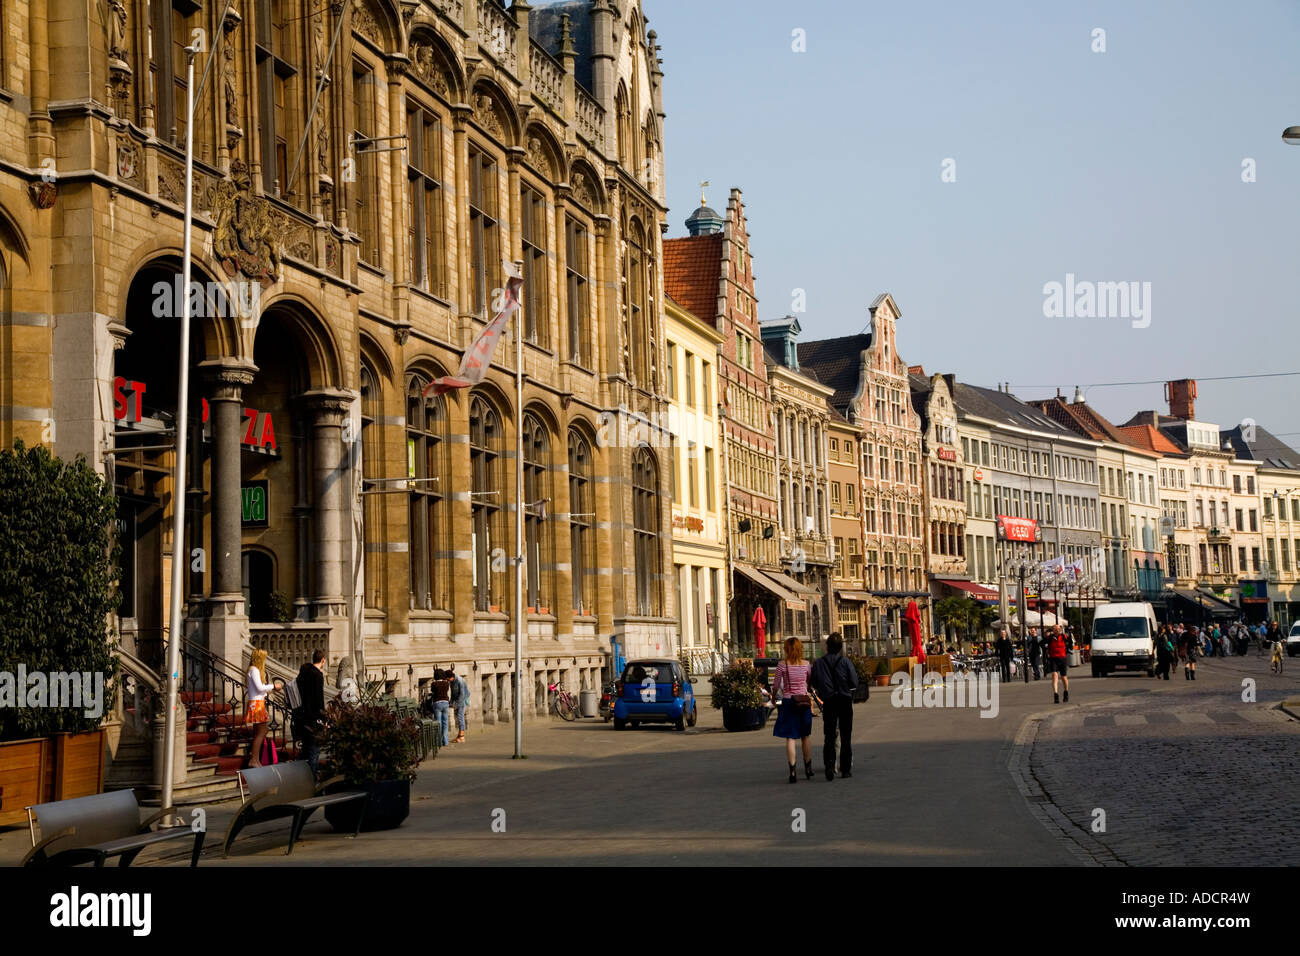 Shopping street in downtown center of Gent, Ghent, Belgium, Europe - Stock Image